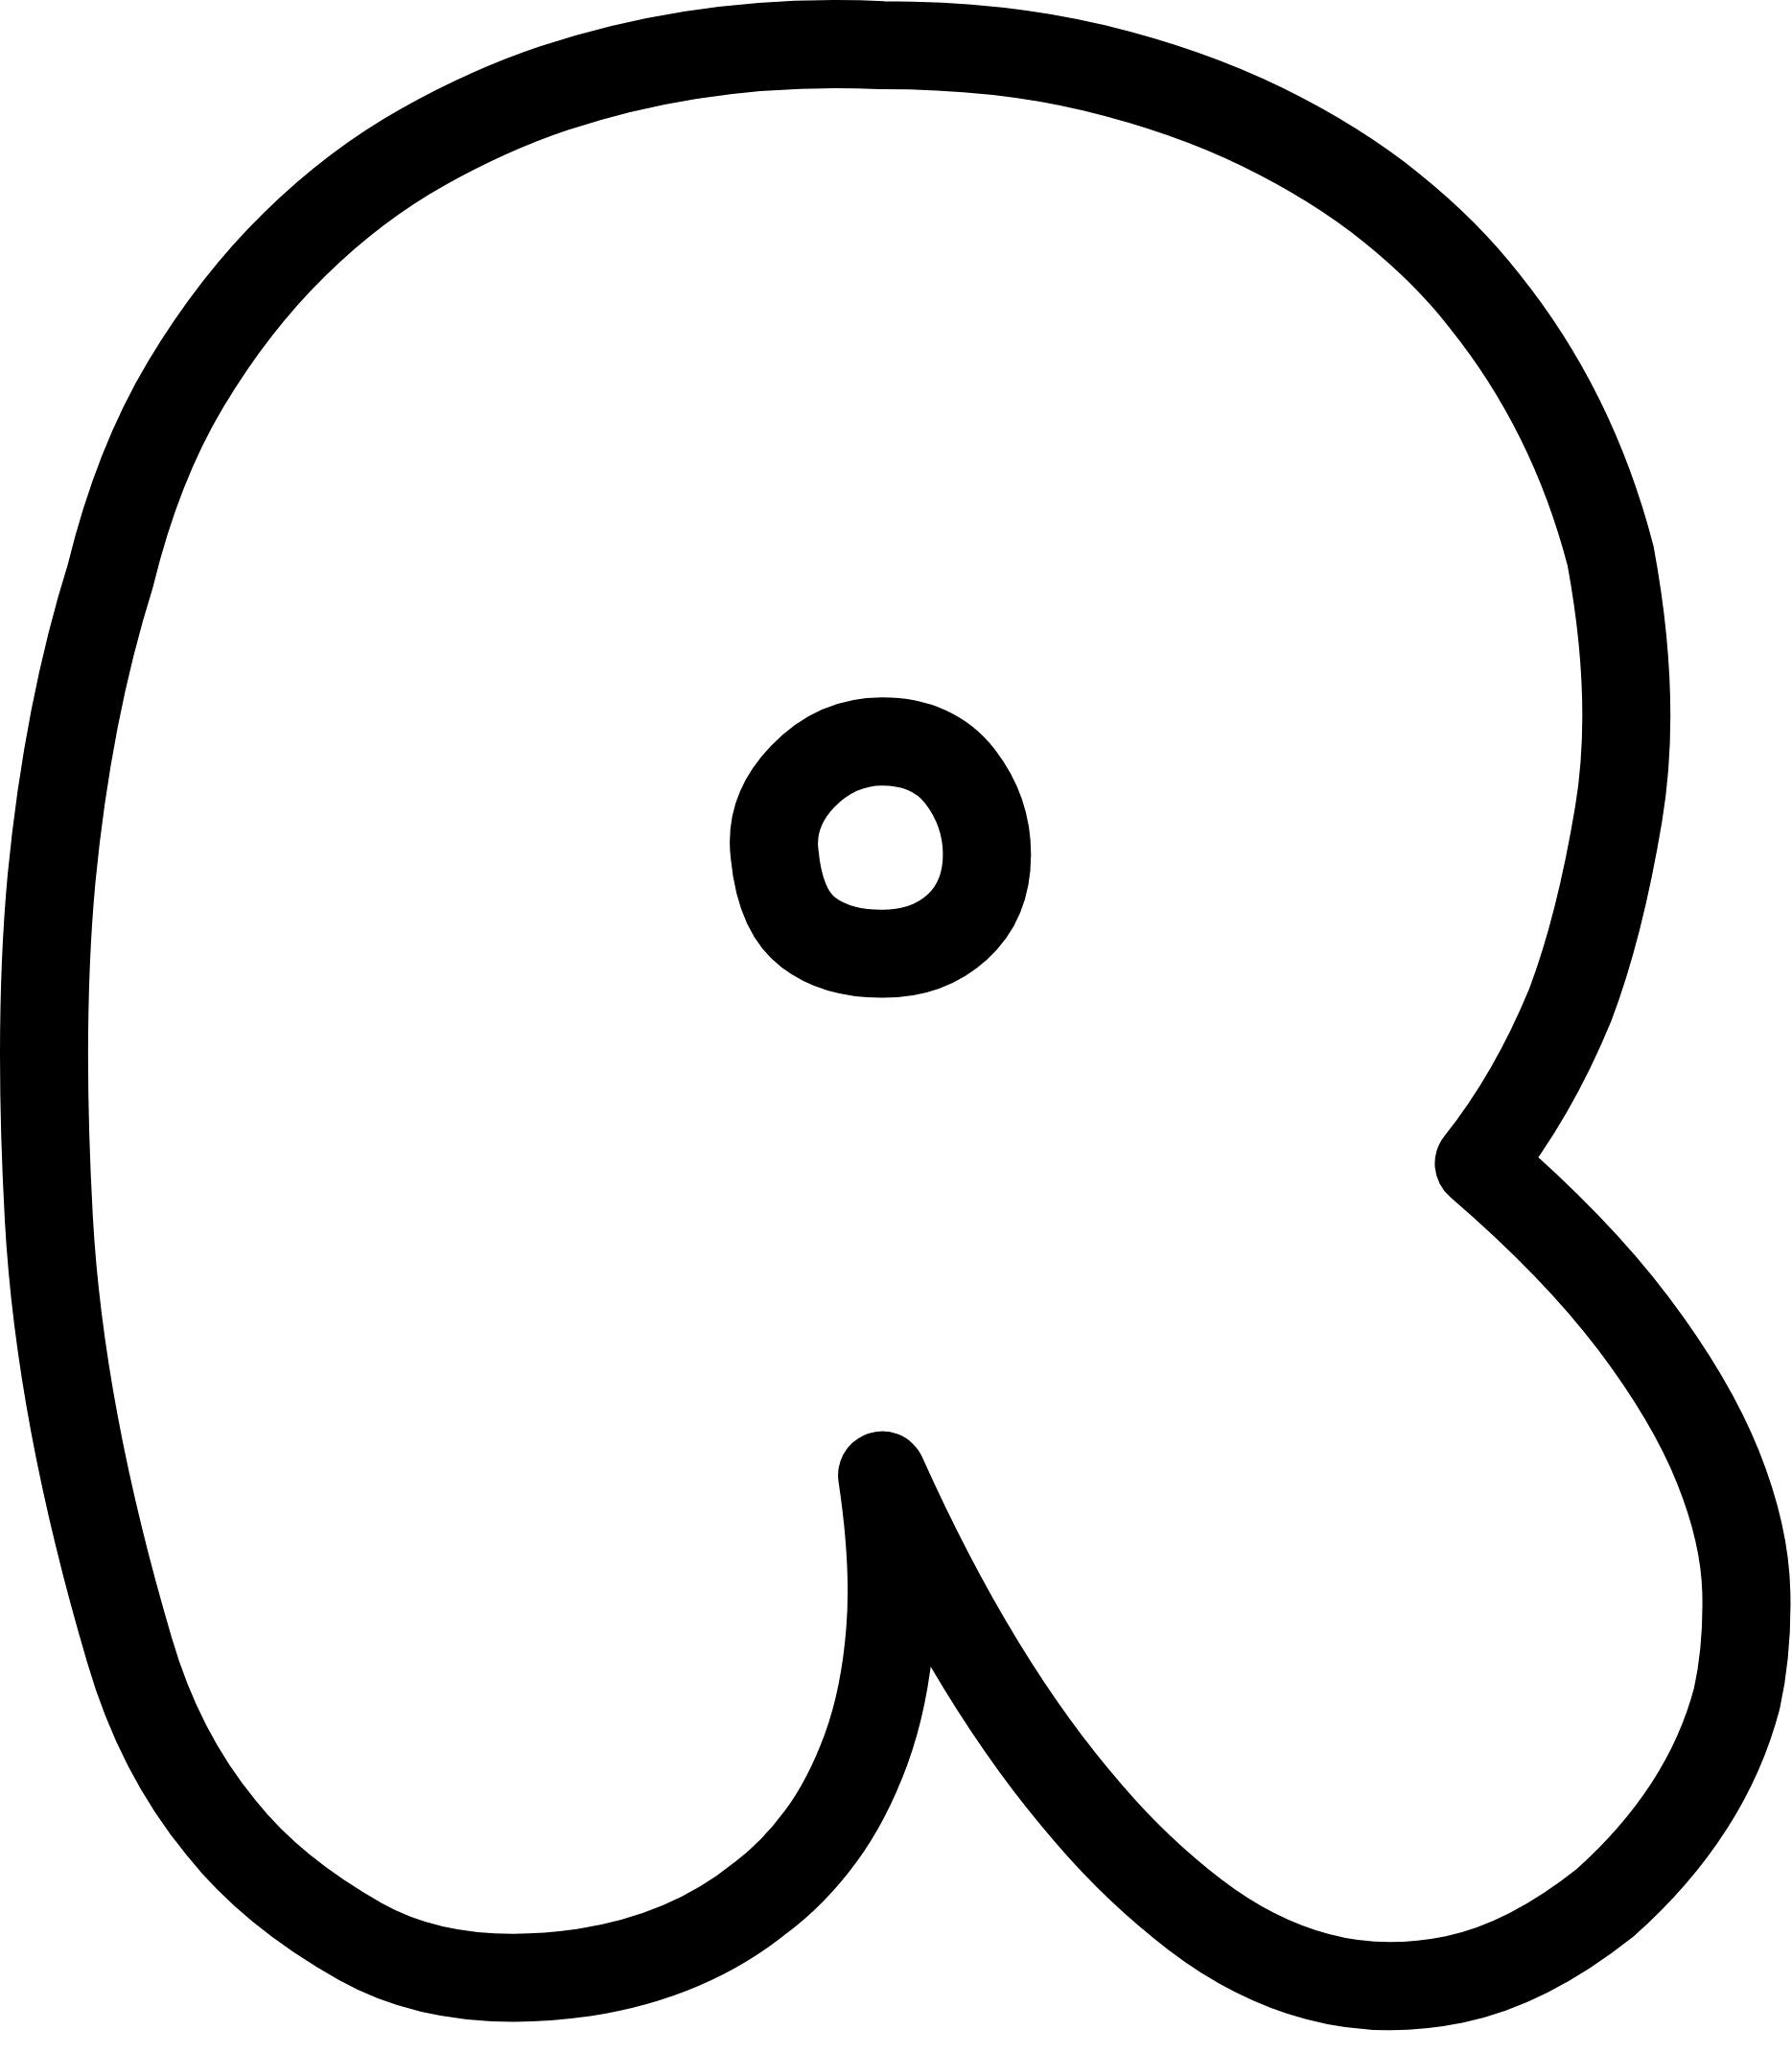 Uppercase Bubble Letter R